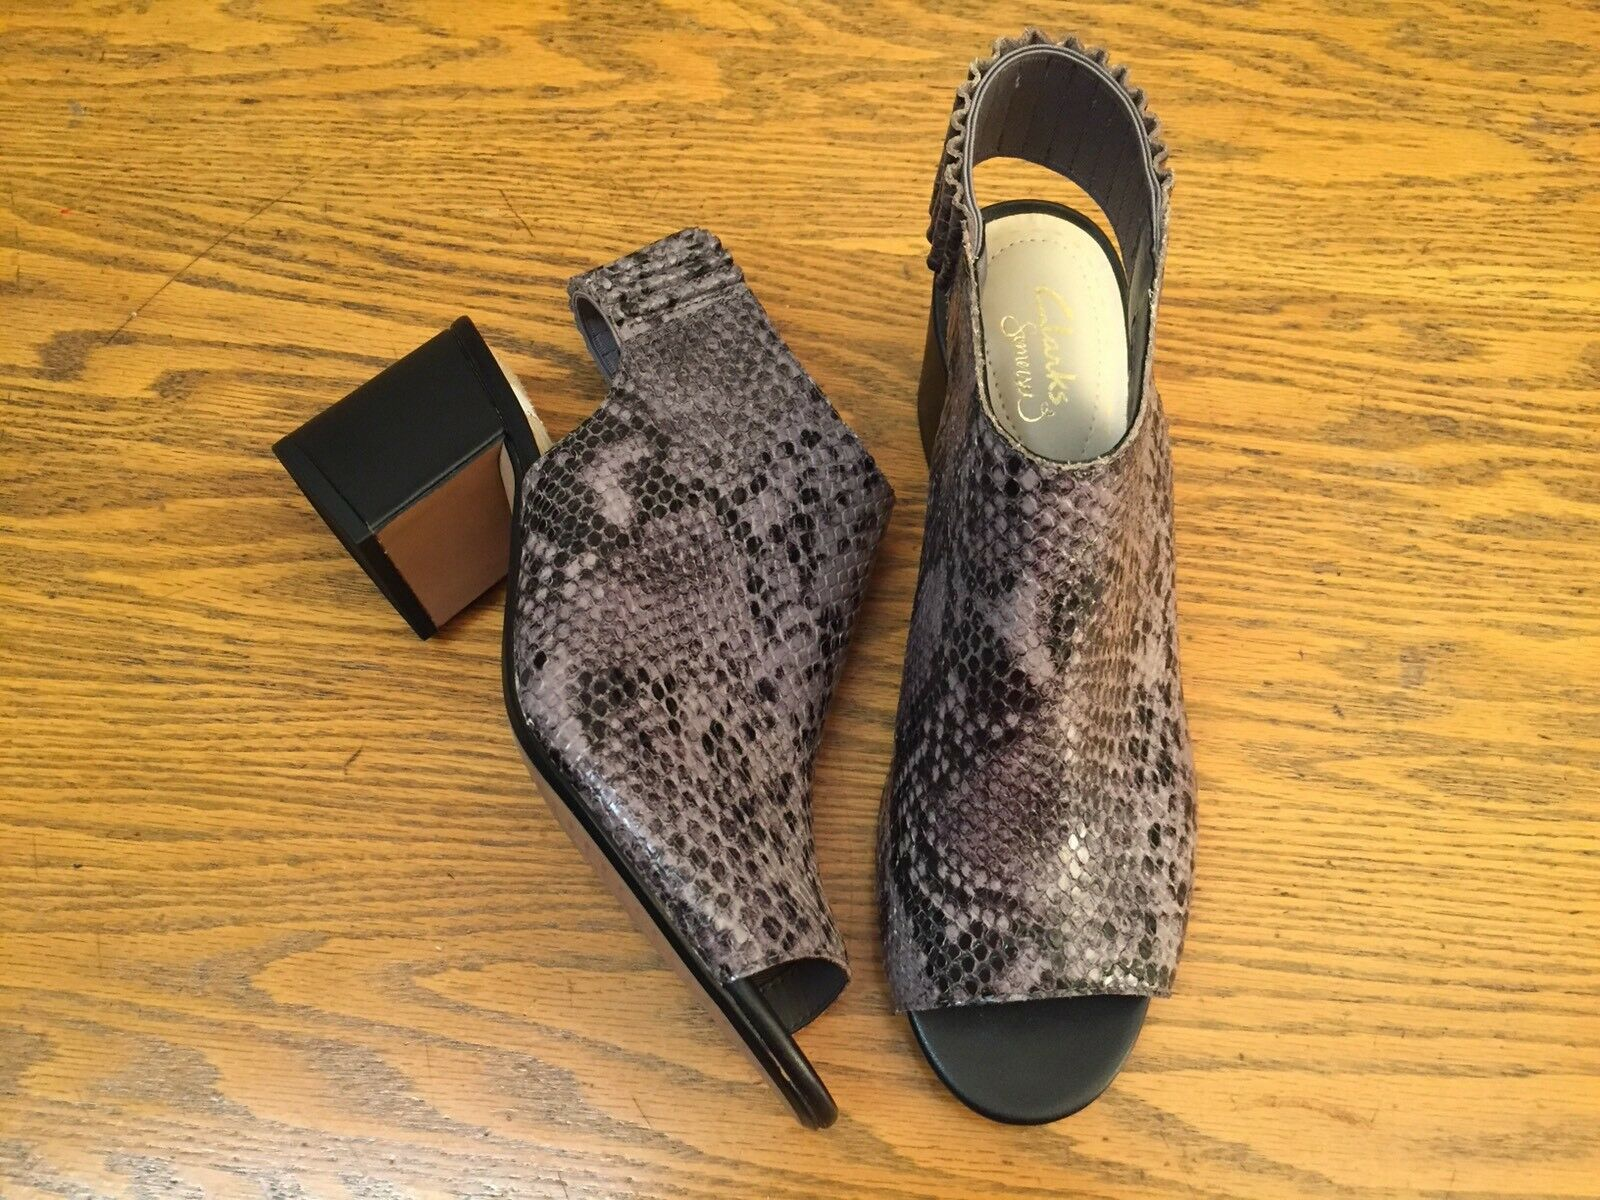 CLARKS SNAKE HEEL PRINT LEATHER OPEN TOE HEEL SNAKE Schuhe NEW SIZE 7.5 7dde54